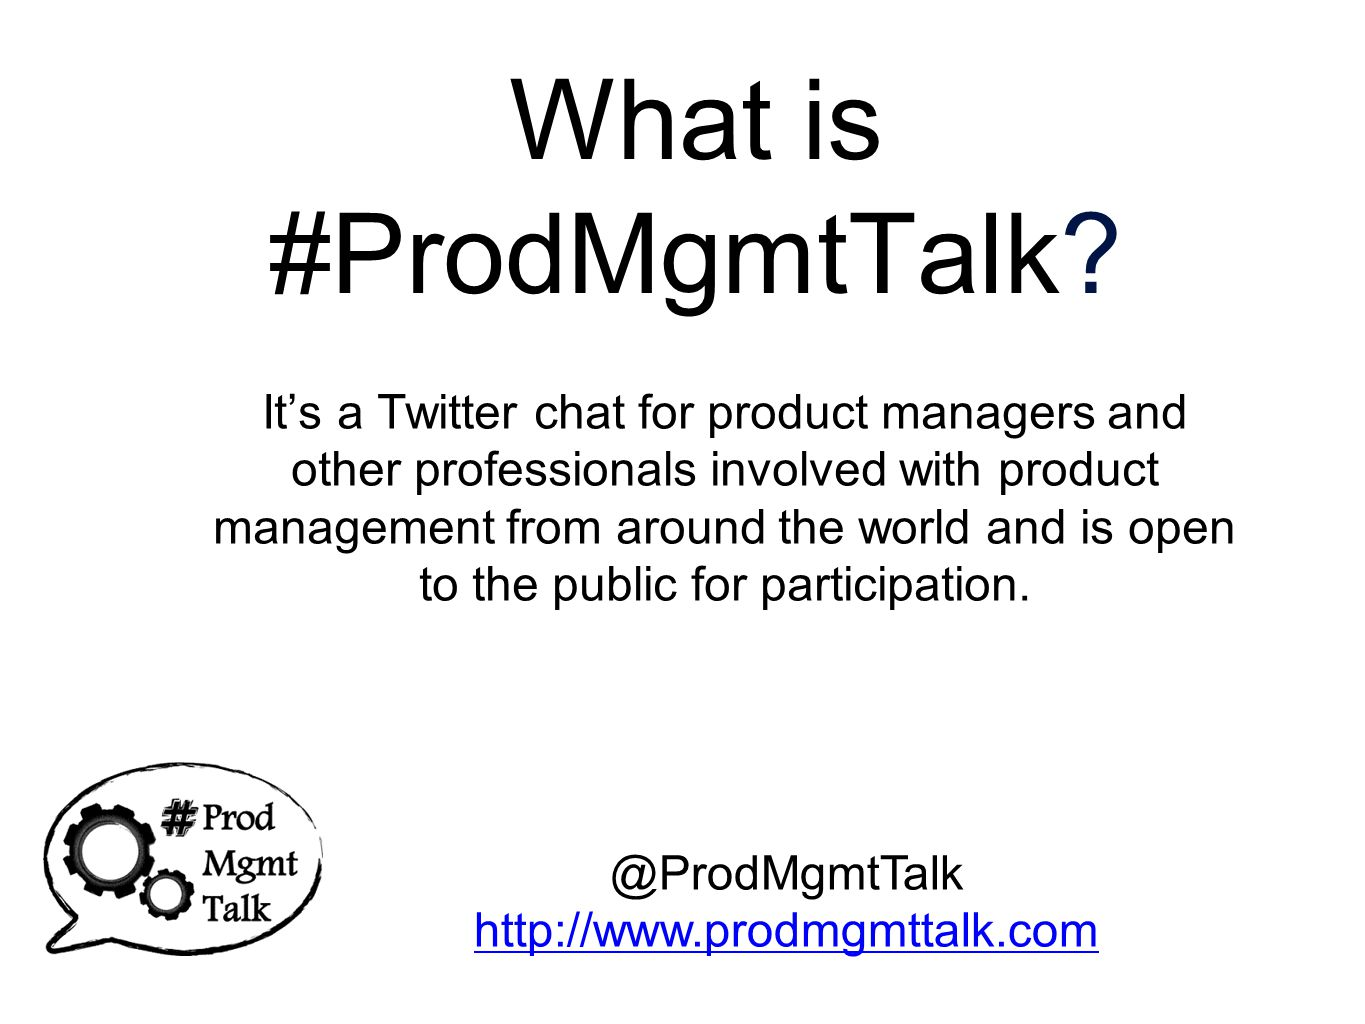 Hashtag: #ProdMgmtTalk Hashtags (keywords prepended with a # ) demarcate tweets into searchable metadata - in the case of Twitter conversations, they signify a rallying point for participants.